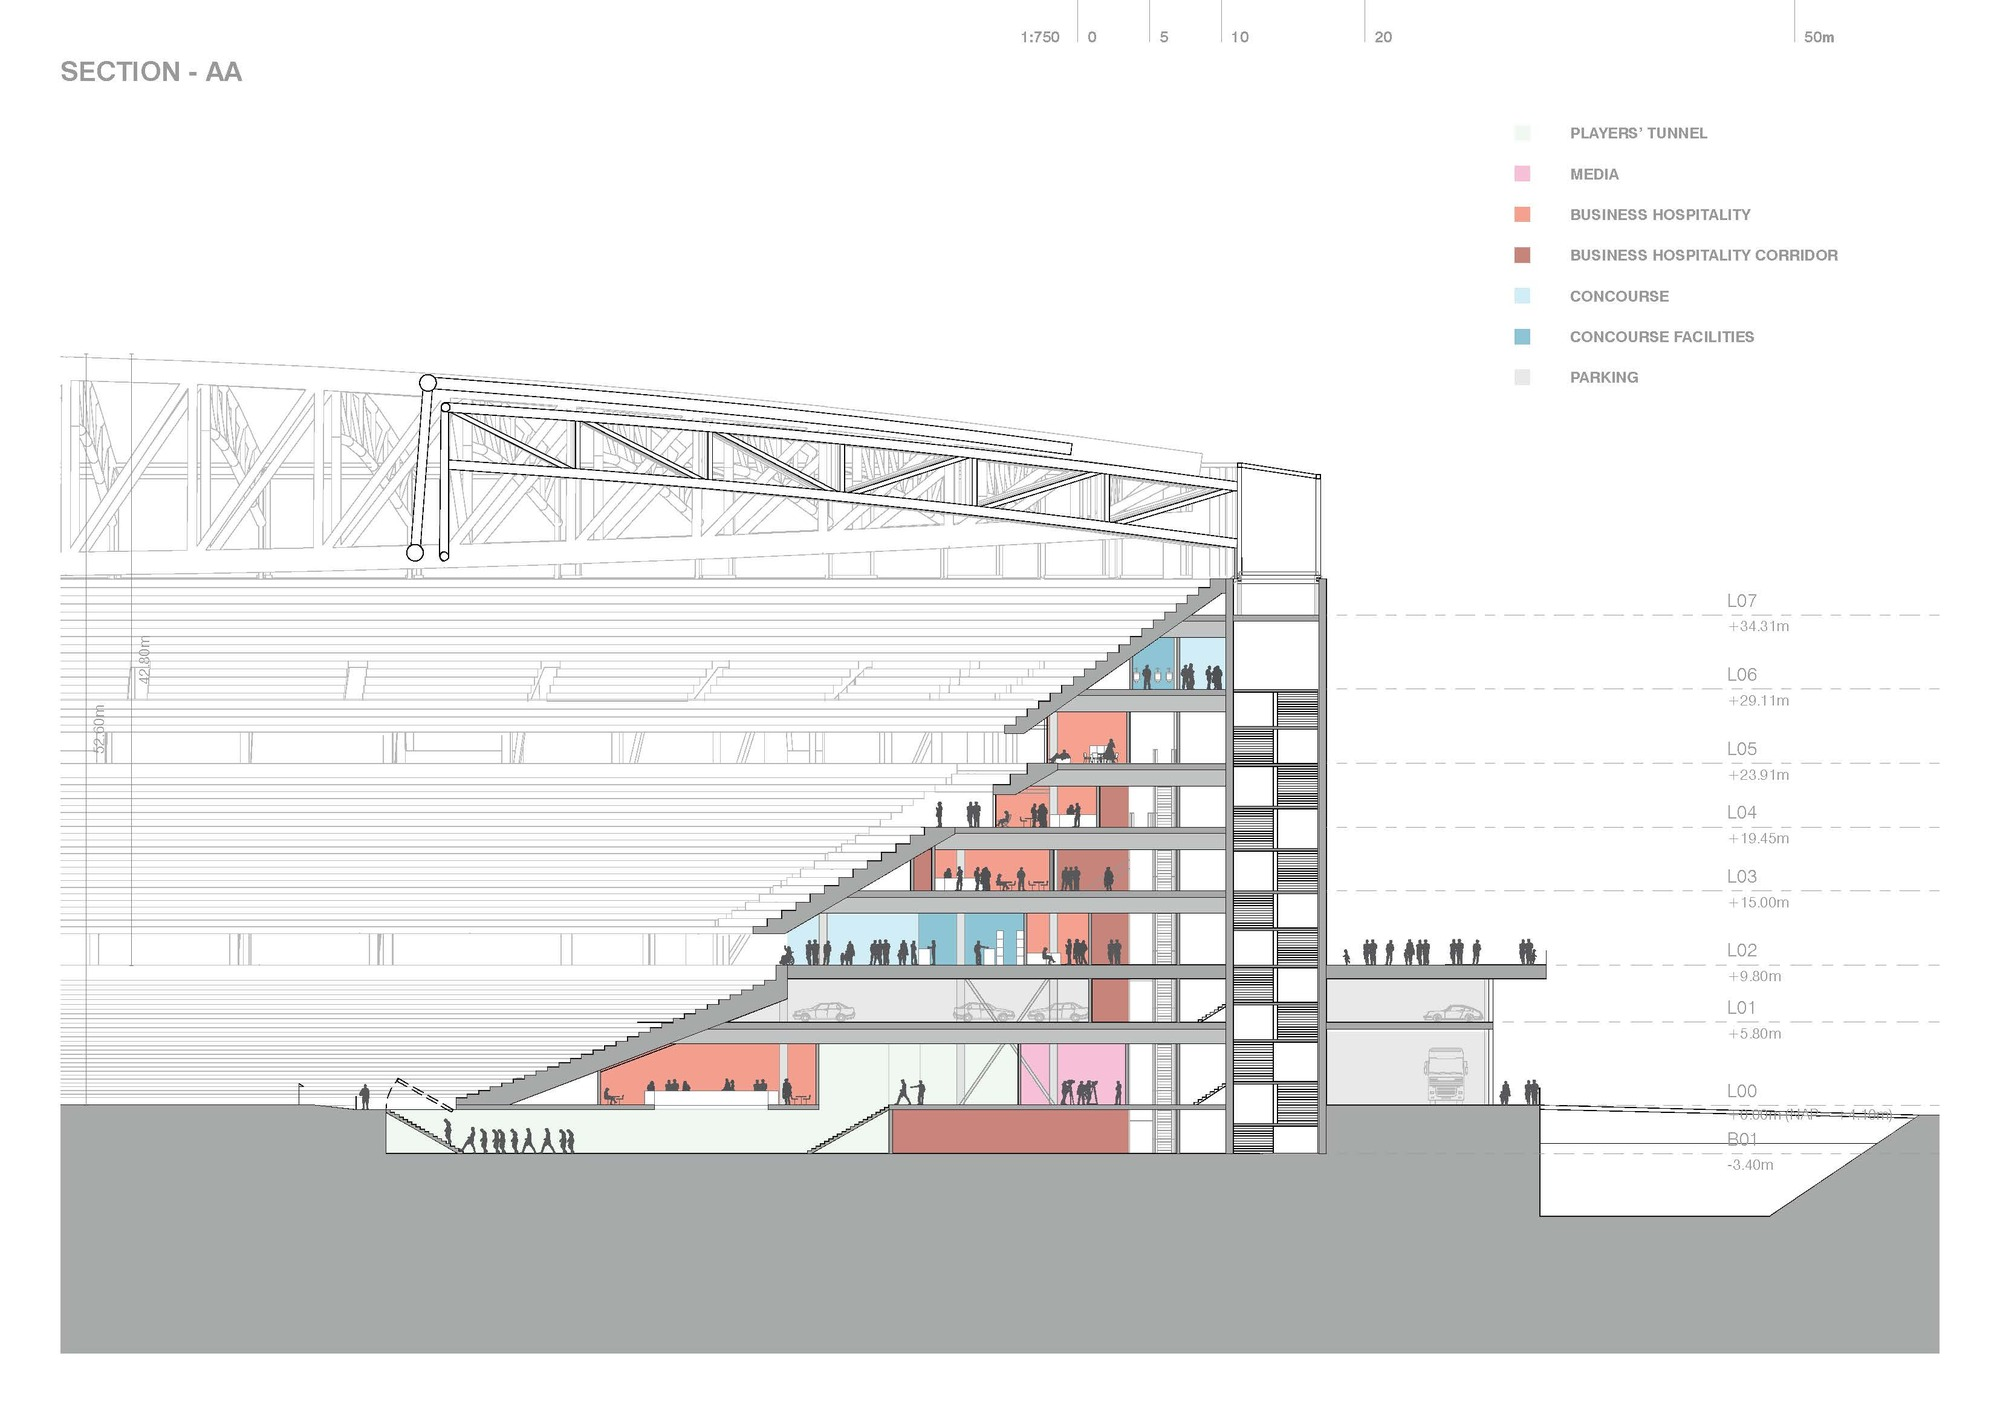 16_23_Feyenoord_City_Stadium_Section_A-A_-_Cross_section.jpg